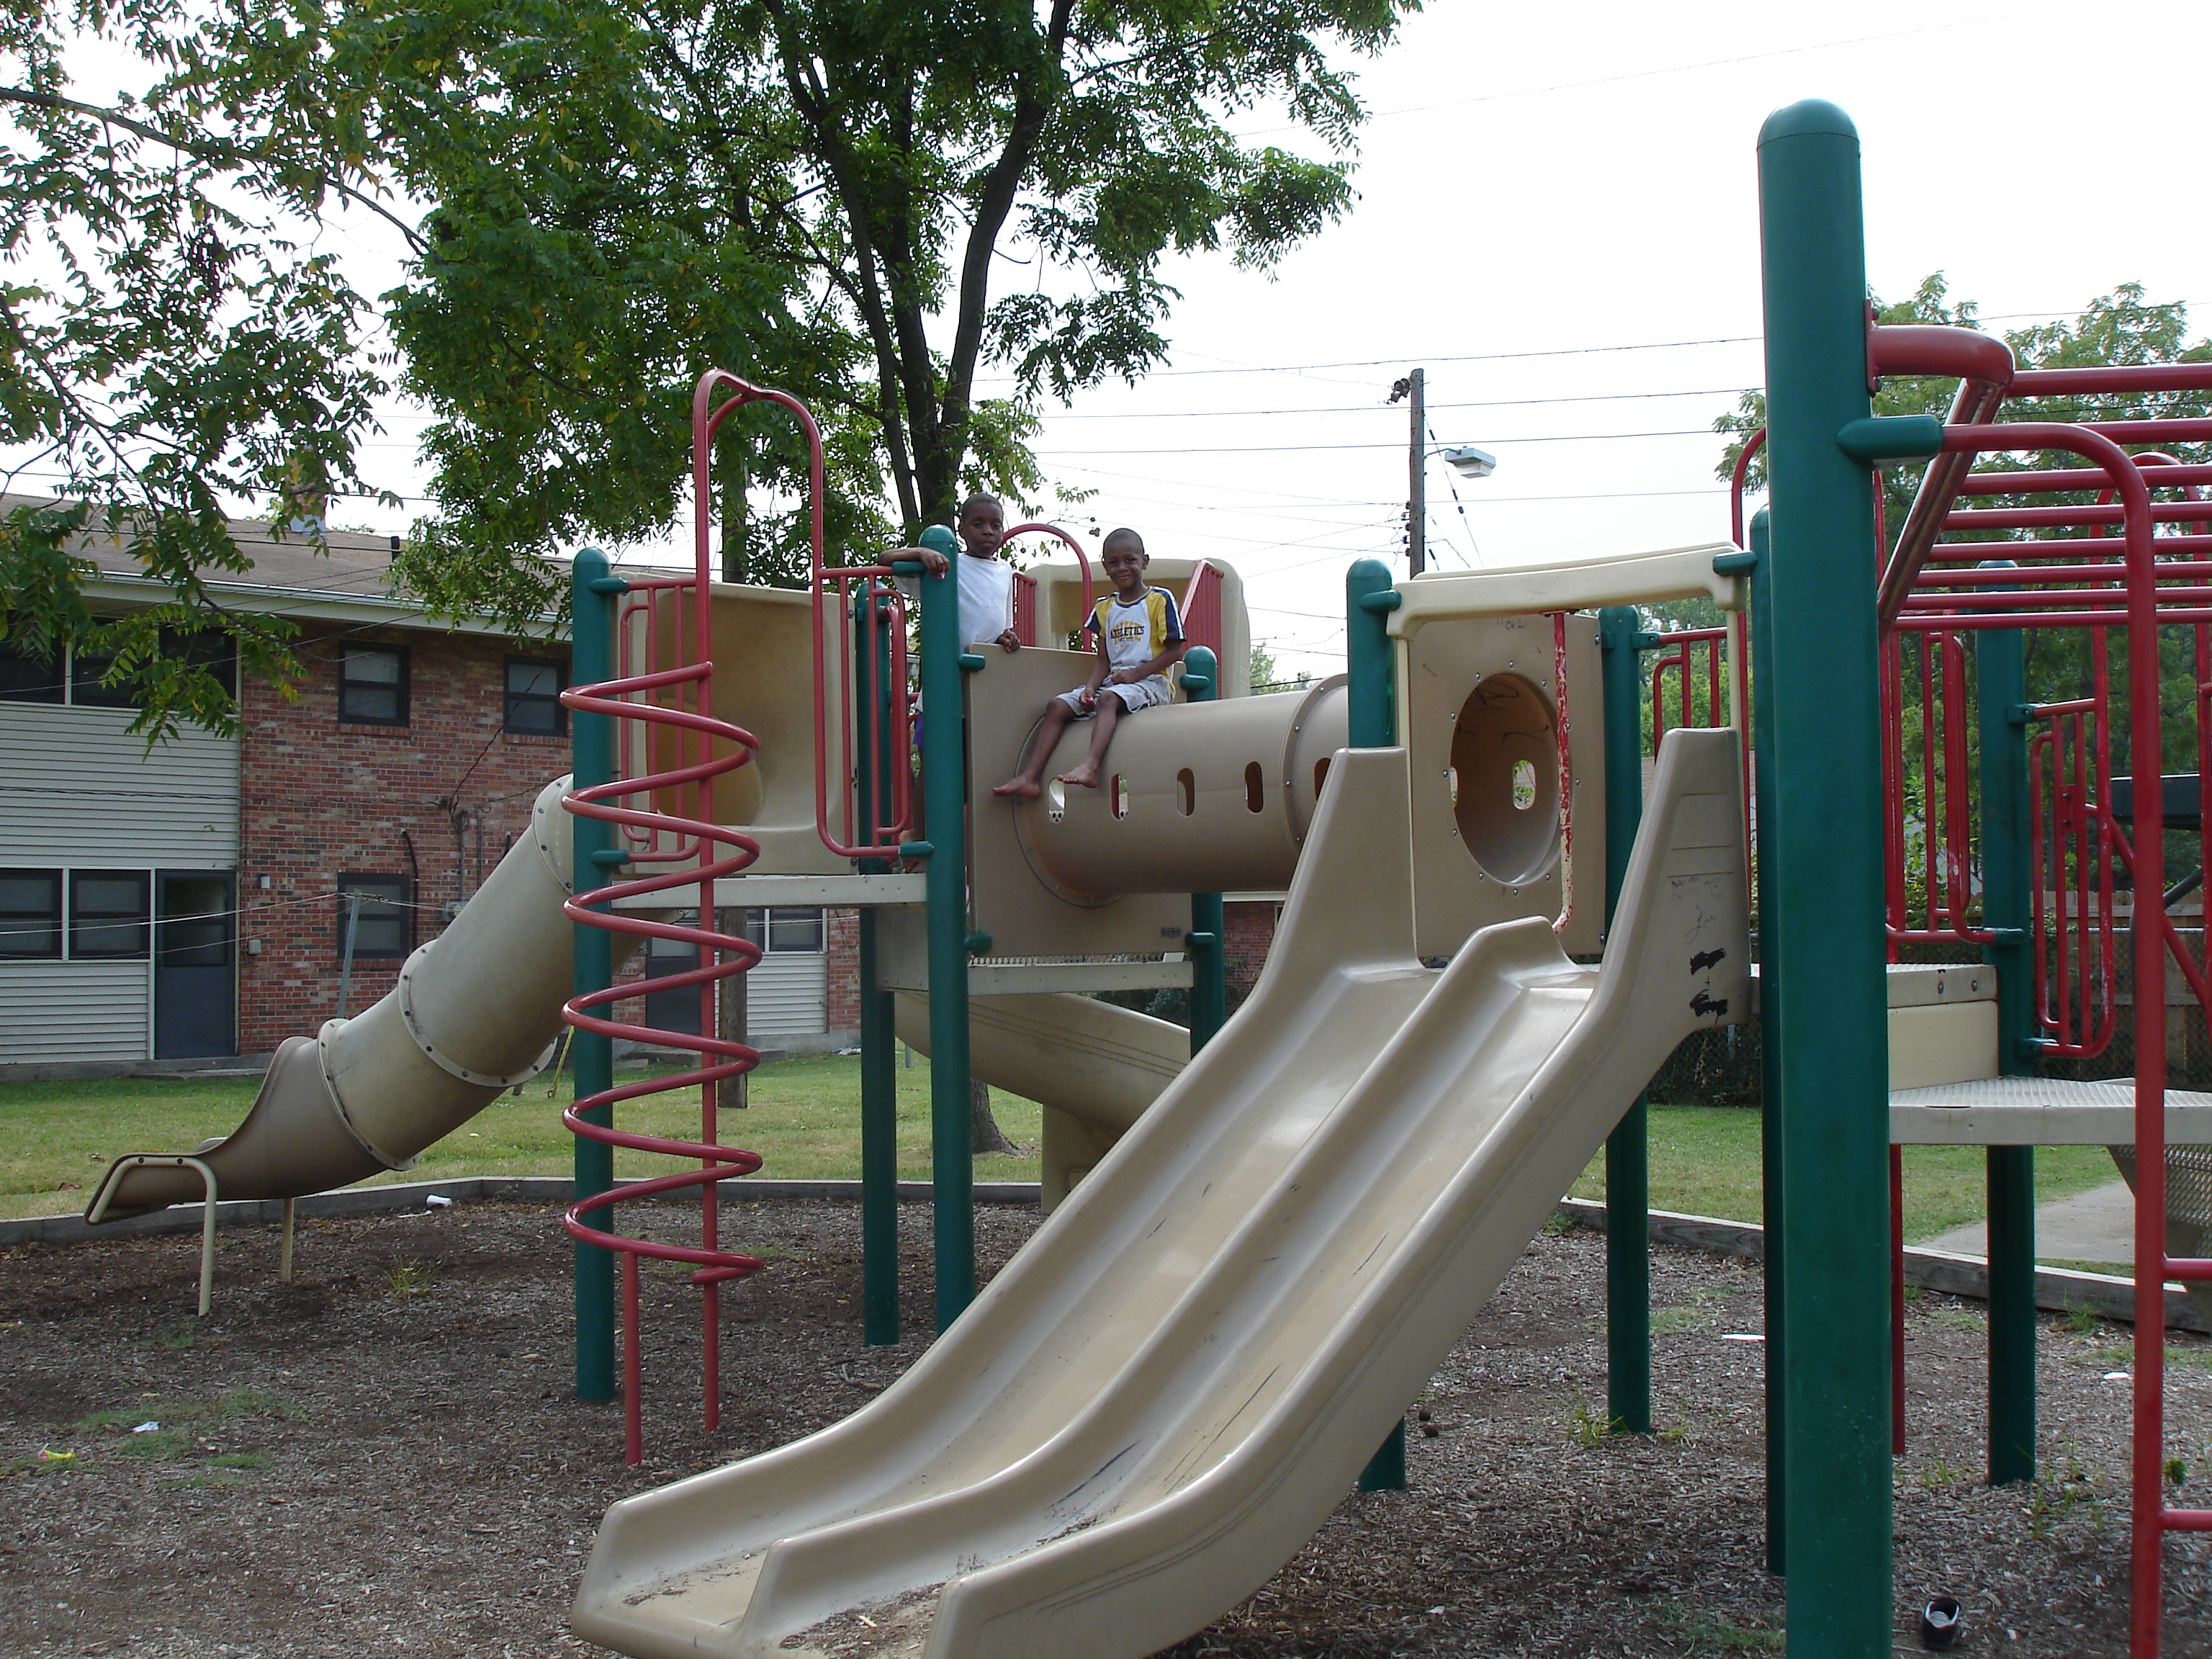 One of CHA's playgrounds